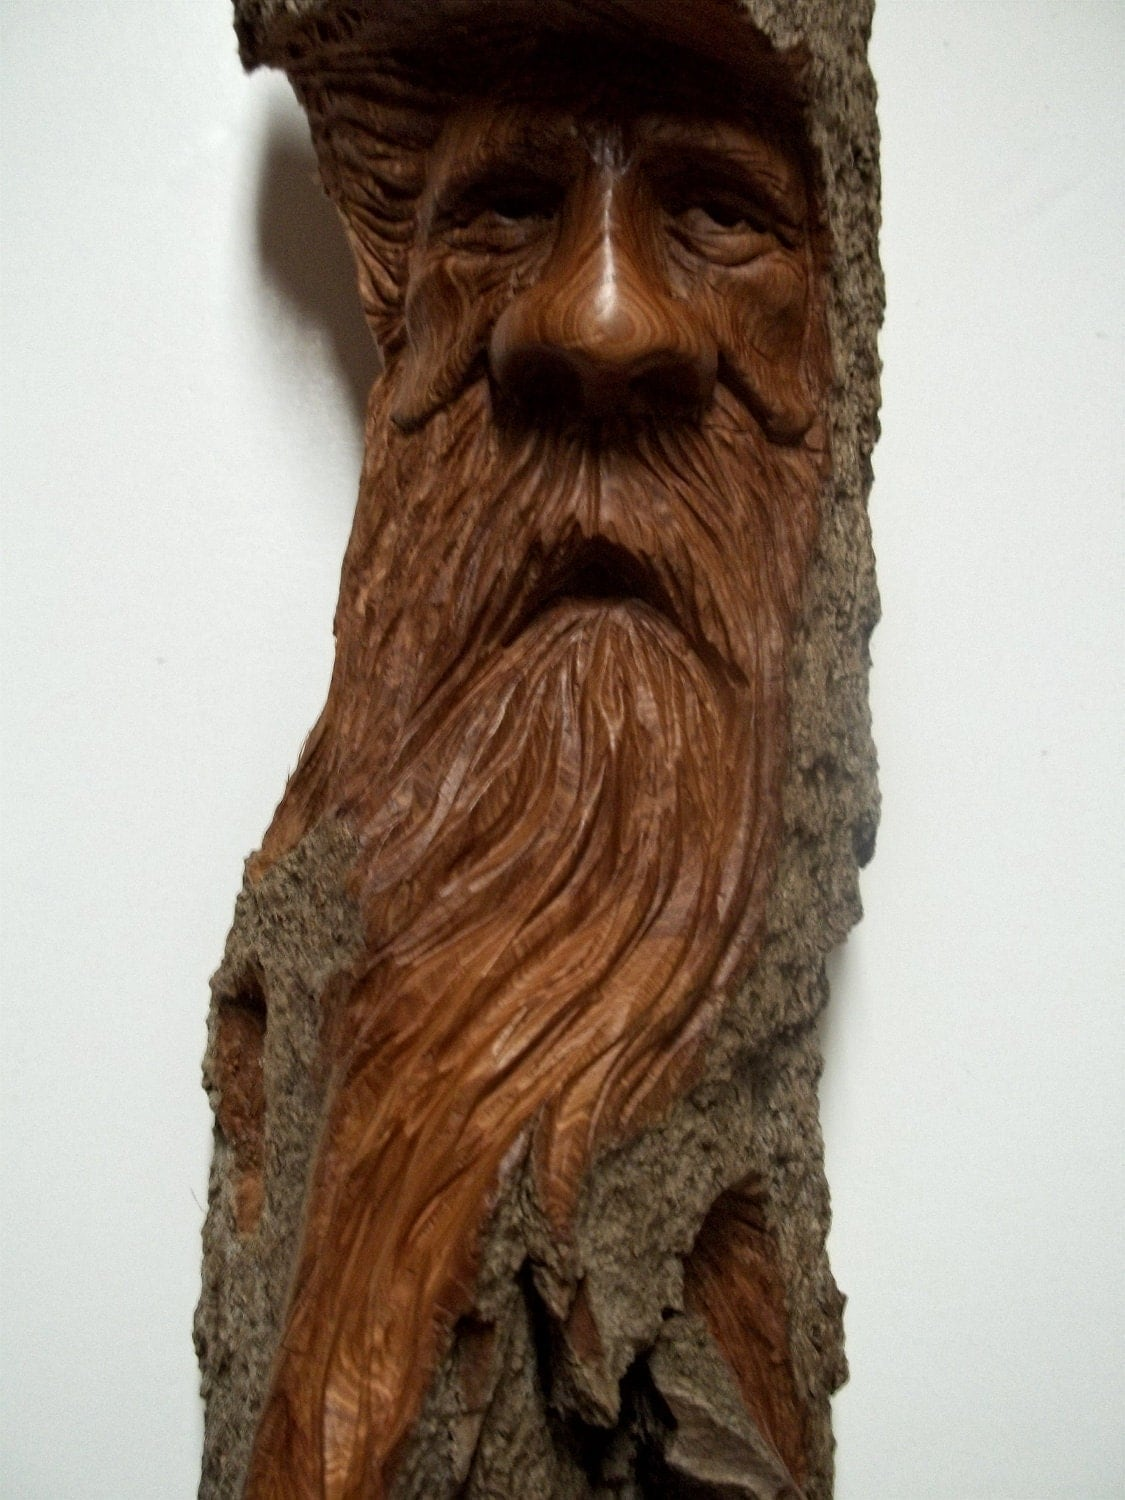 Woodspirit hand carved in cottonwood bark